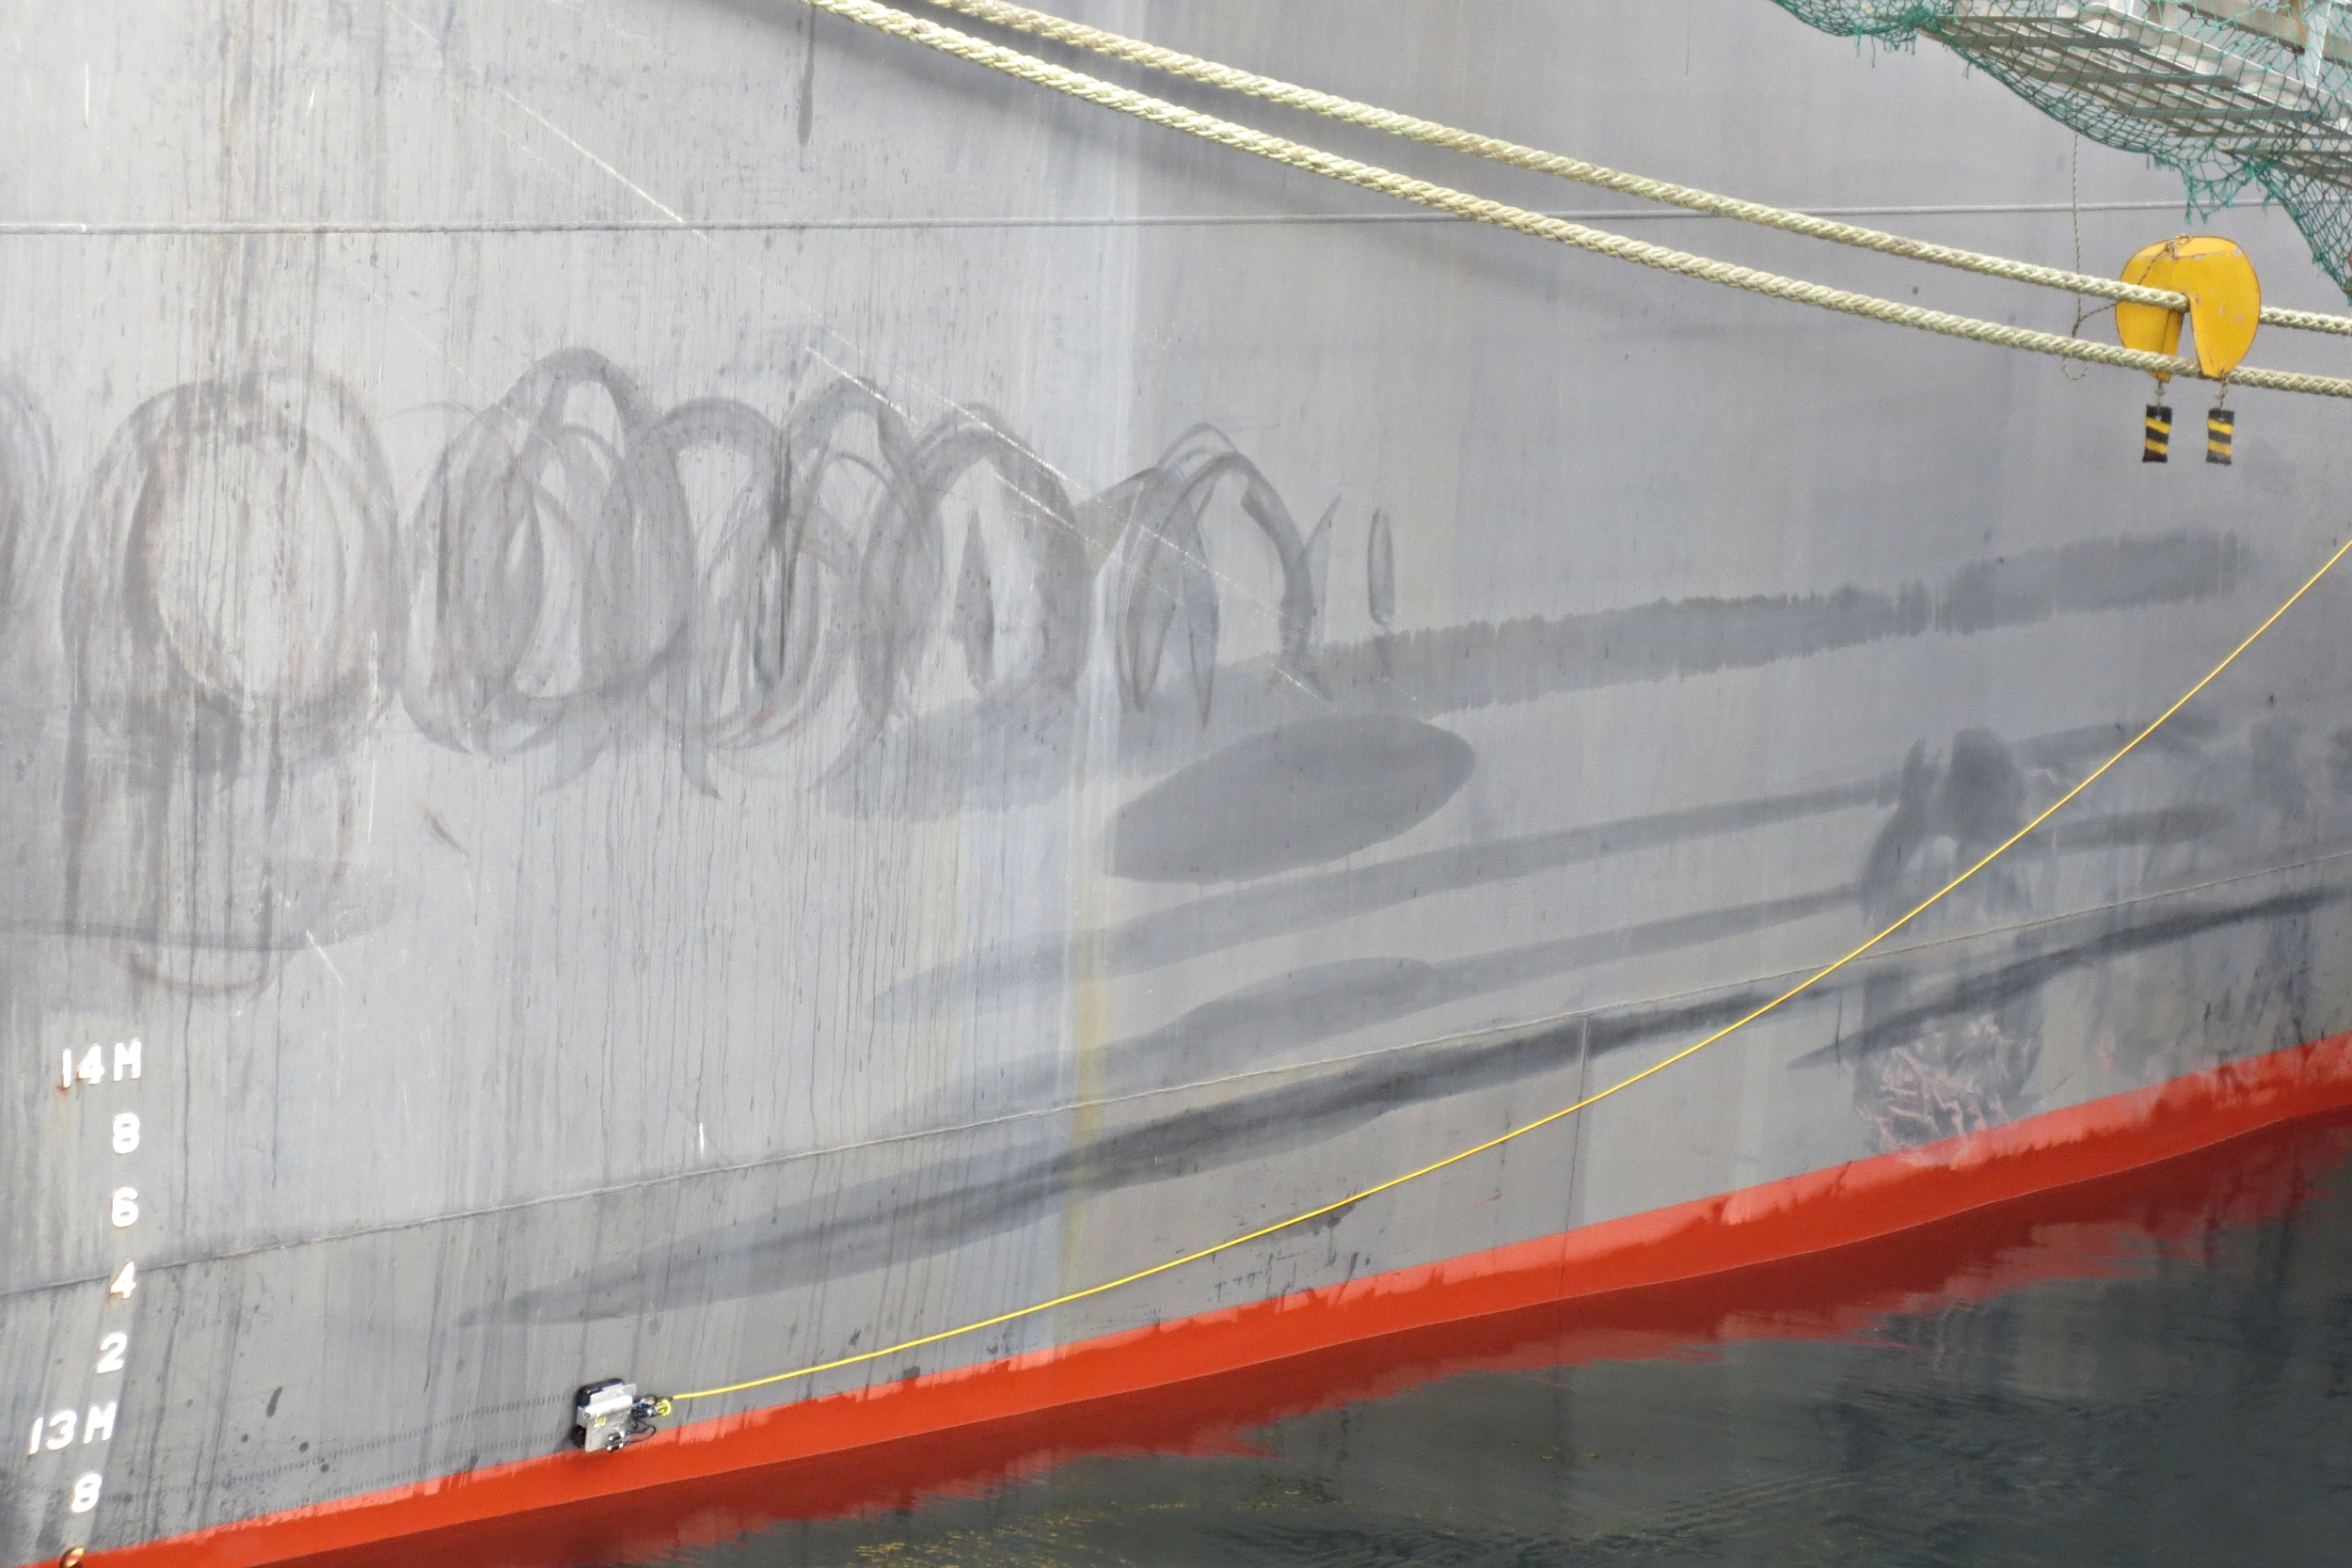 MicroMag inspects Ship Hull